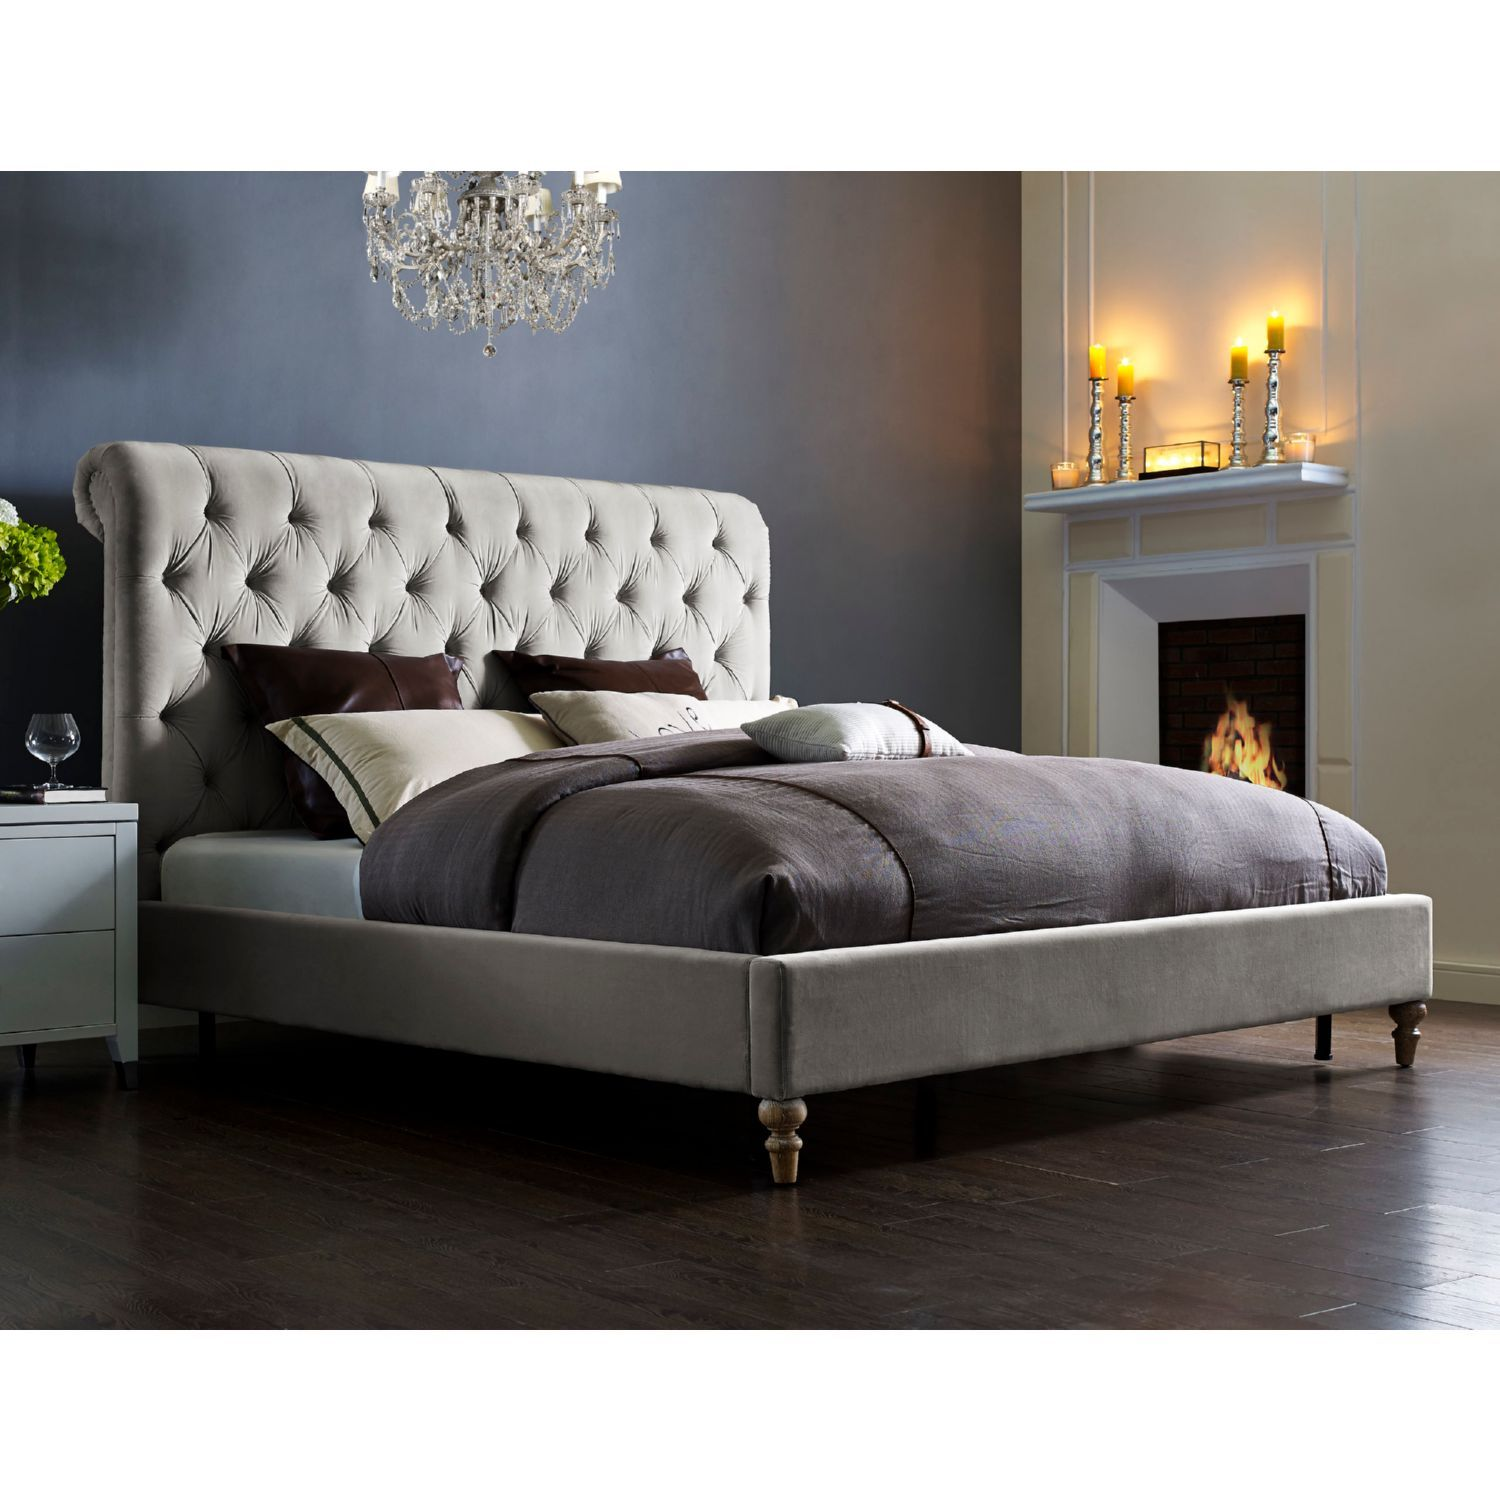 Best Putnam Queen Bed In Light Grey Tufted Velvet W Reclaimed 400 x 300